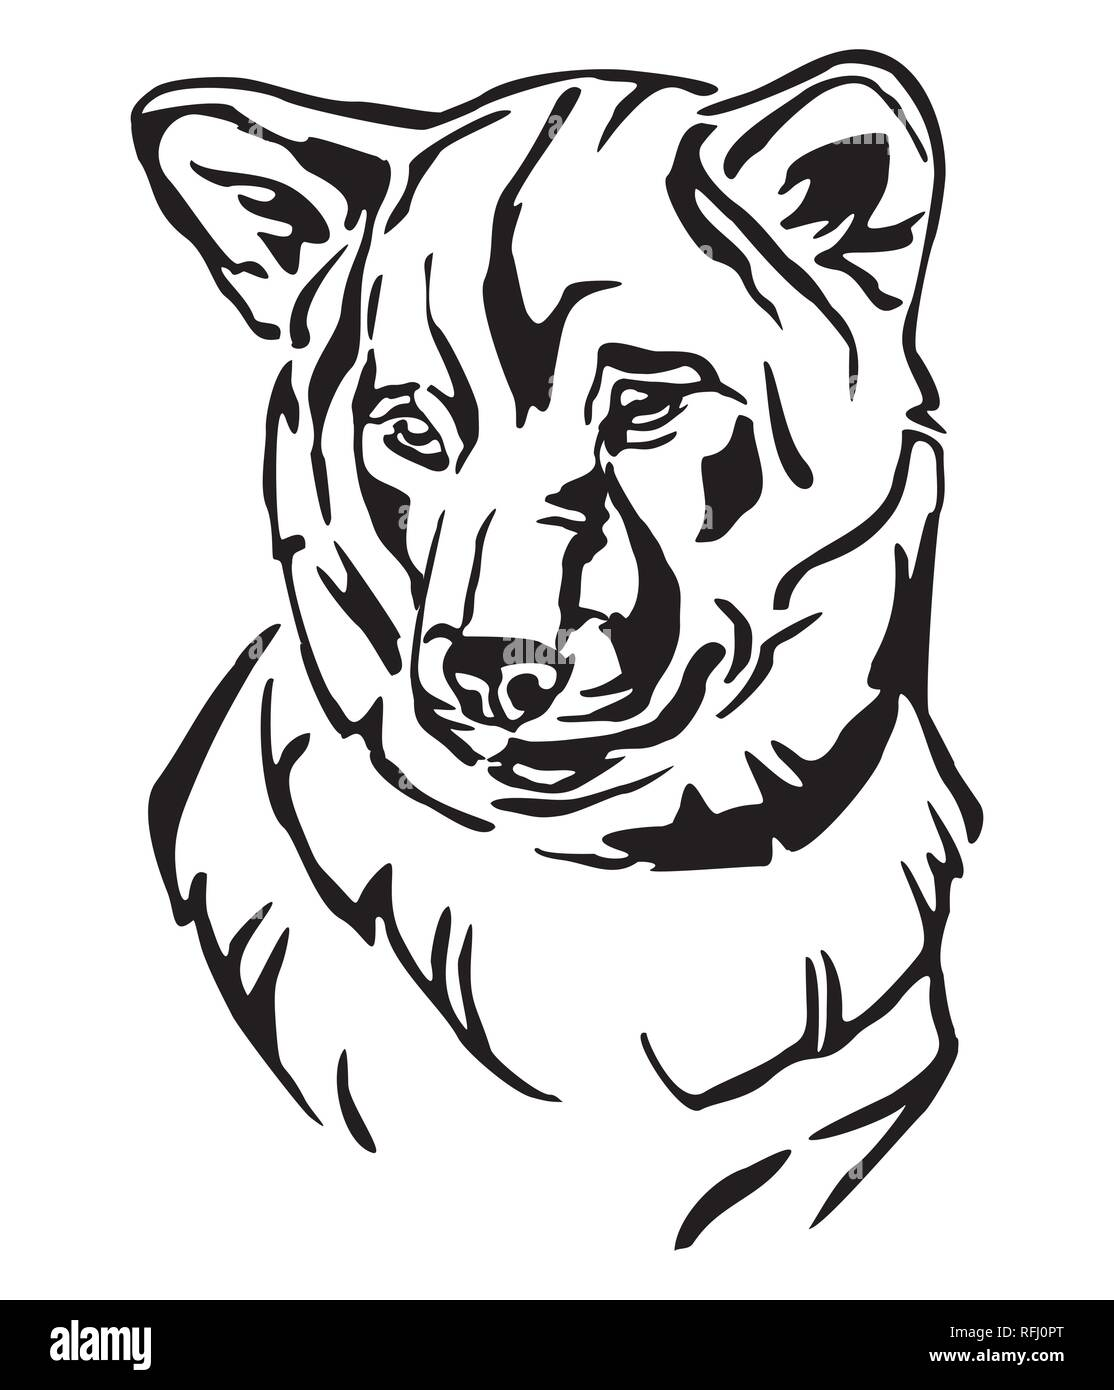 2dc1cf0c34a9 Decorative outline portrait of Dog Shiba Inu, vector illustration in black  color isolated on white